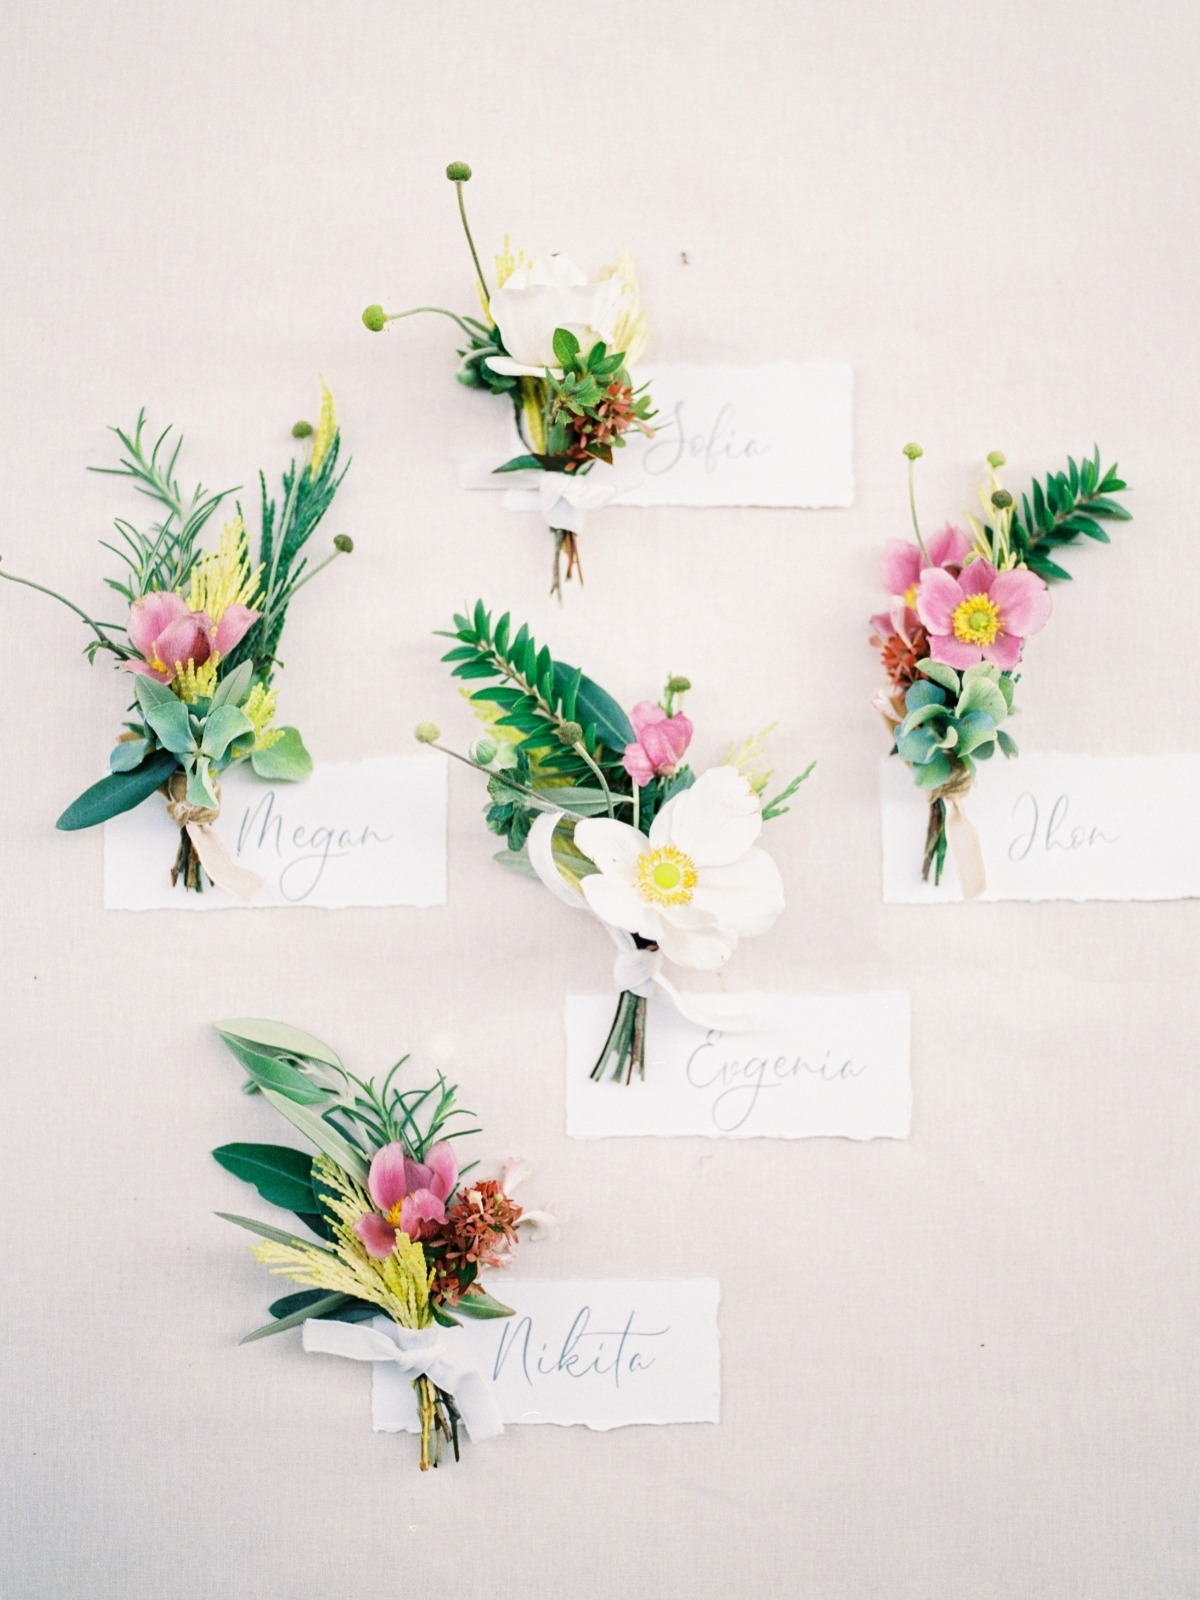 mini bouquets used for escort cards